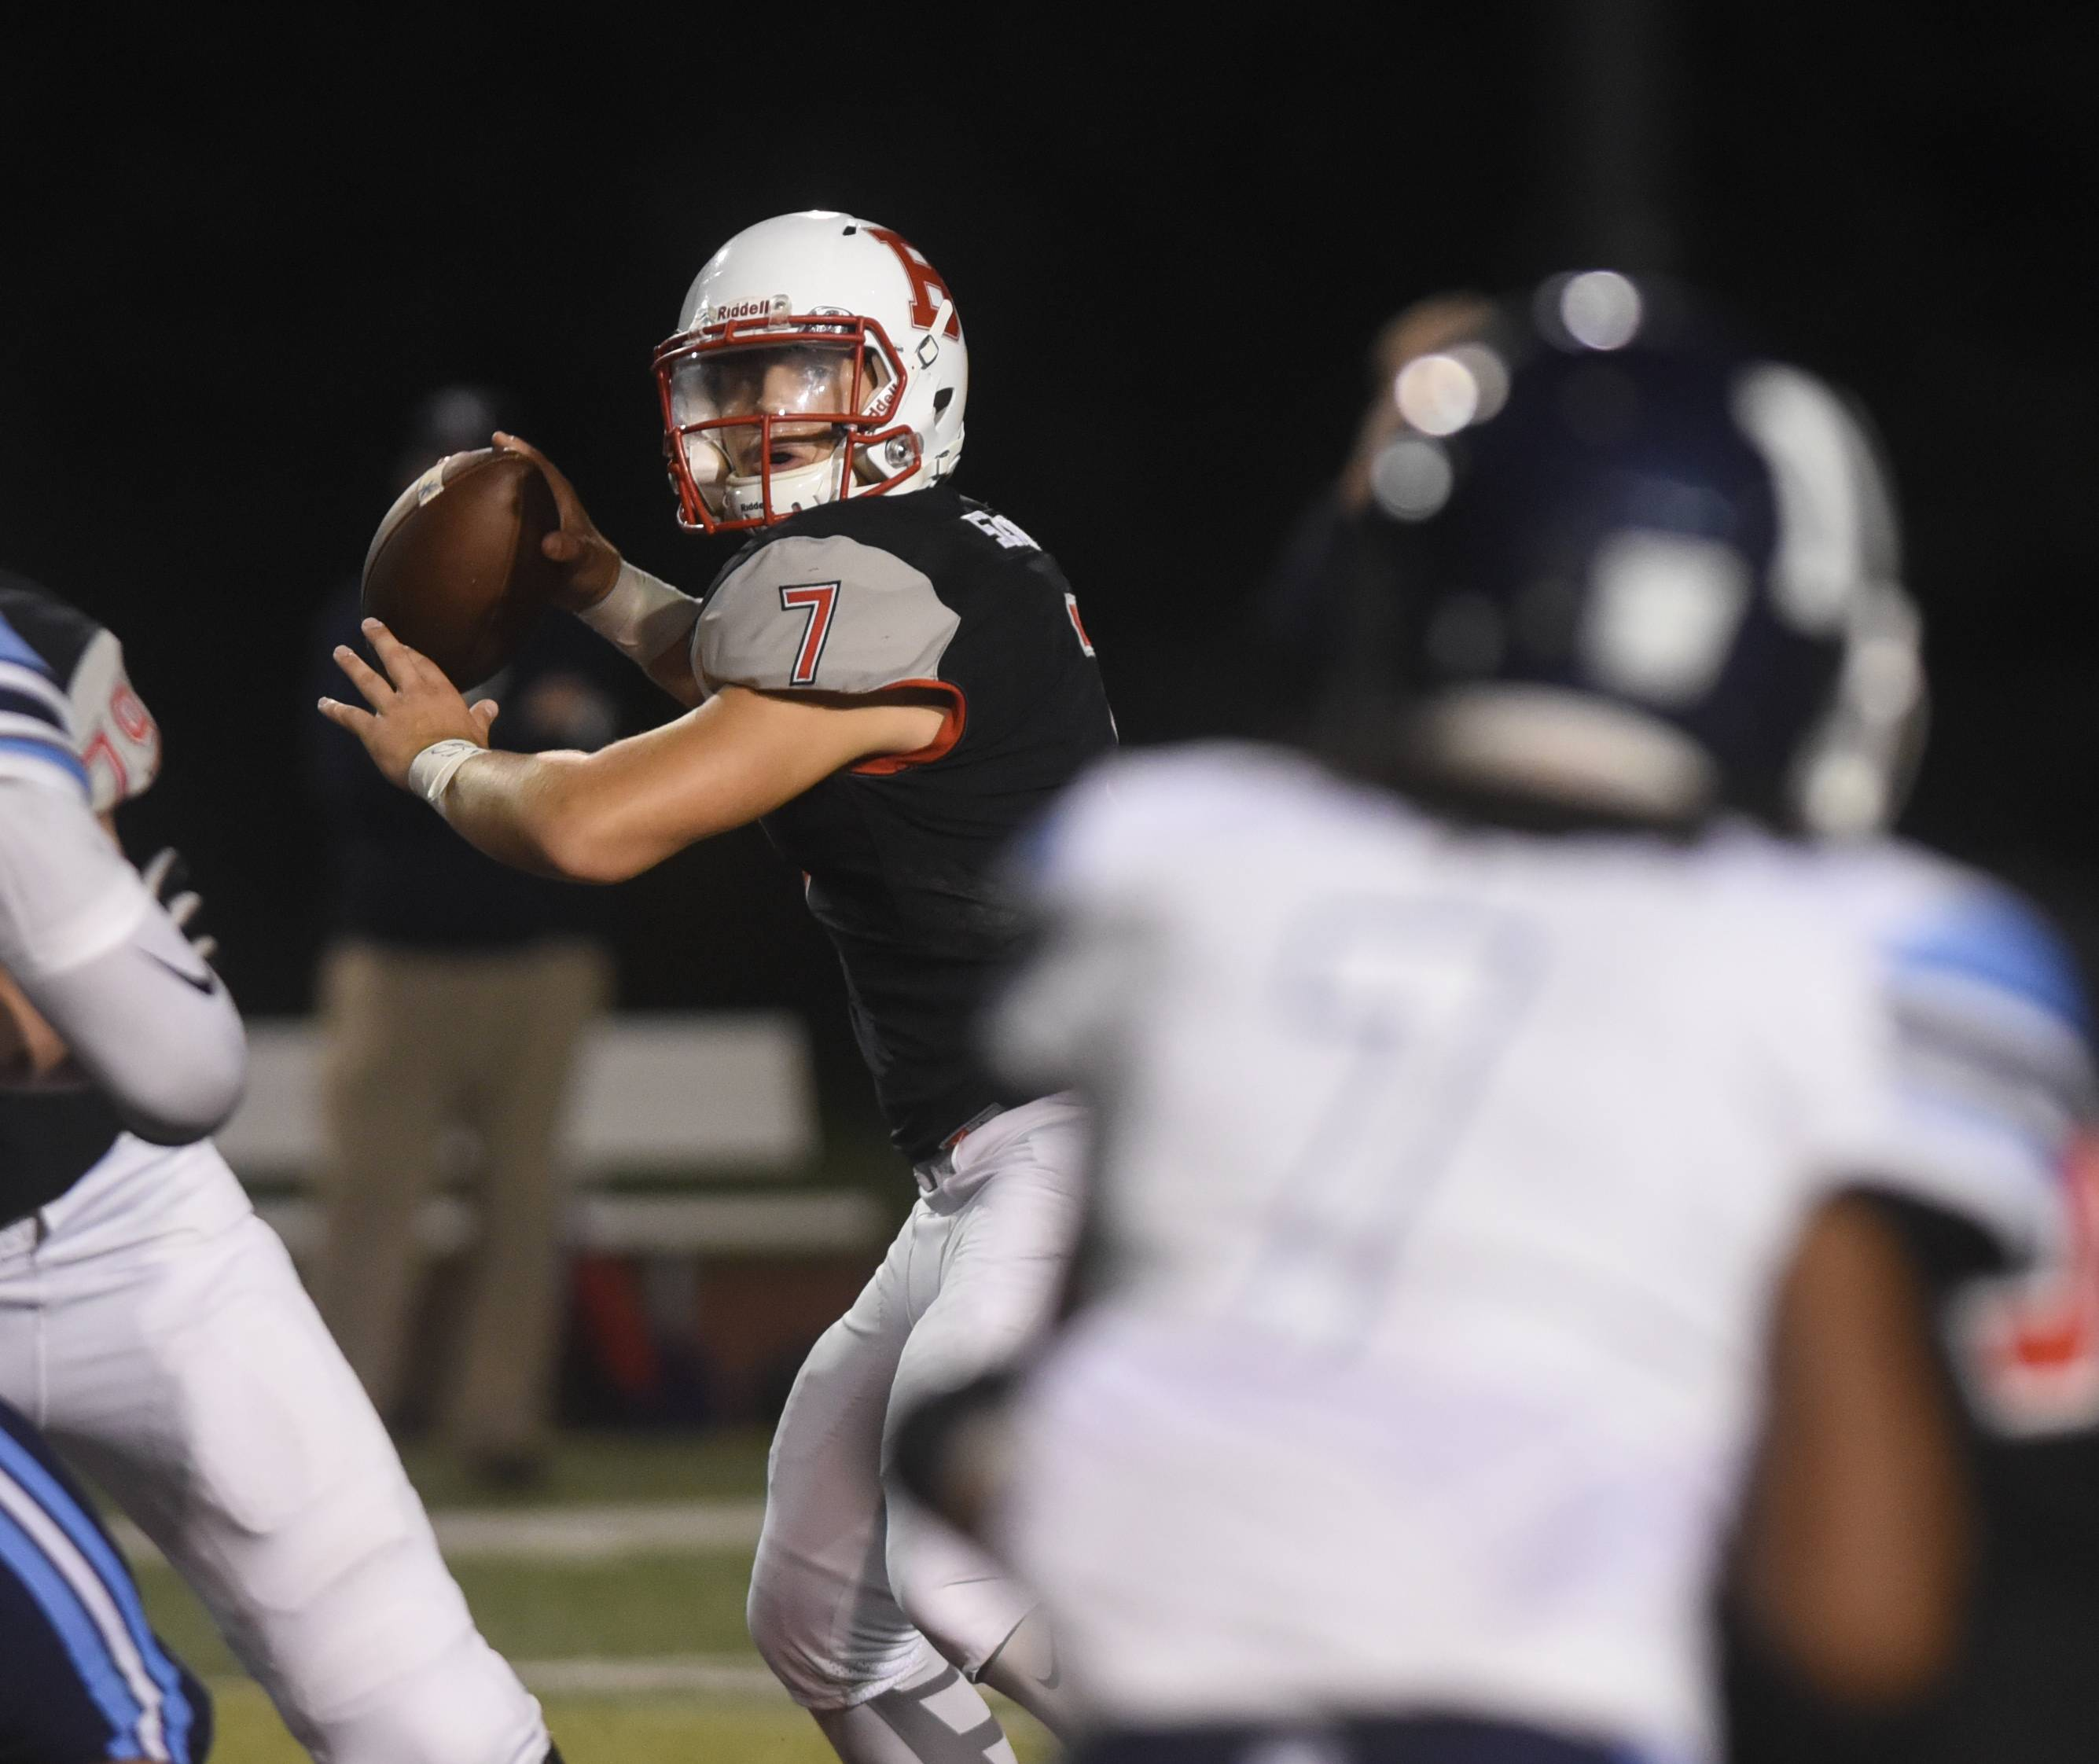 Benet's Jack Sznajder (7) gets ready to pass during the Nazareth at Benet football game Friday.